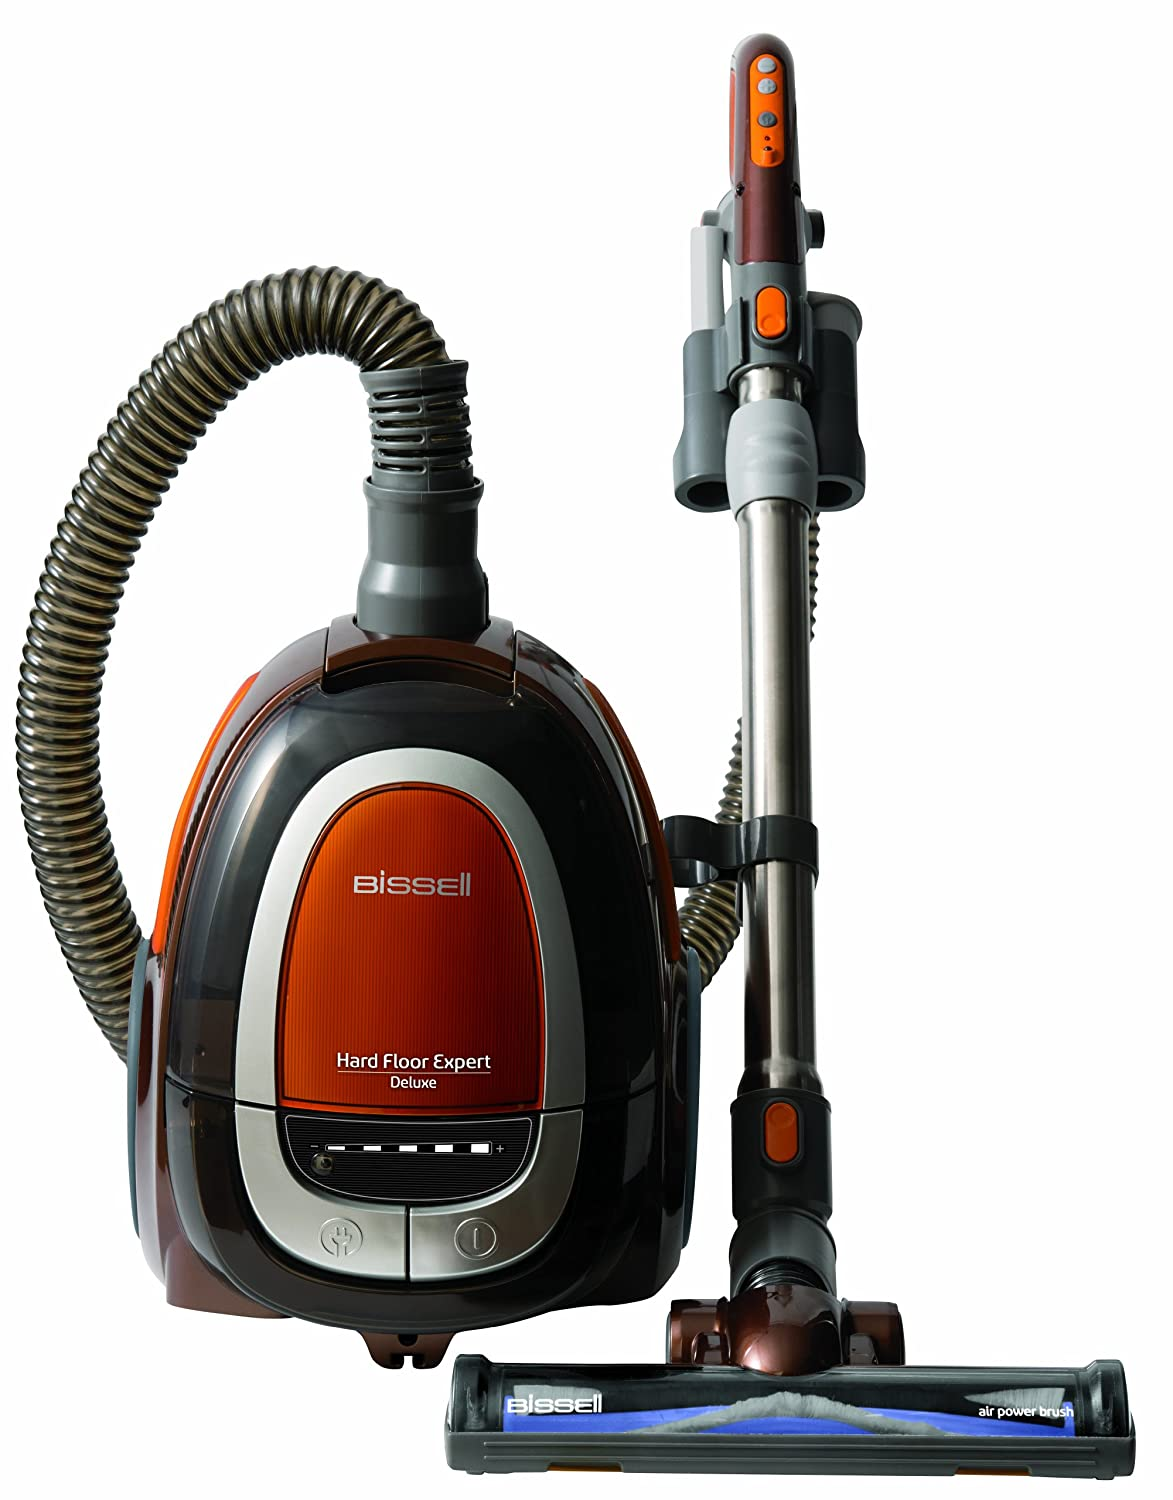 select prd floors floor wid steam op sharpen bissell cleaner mop hei jsp product